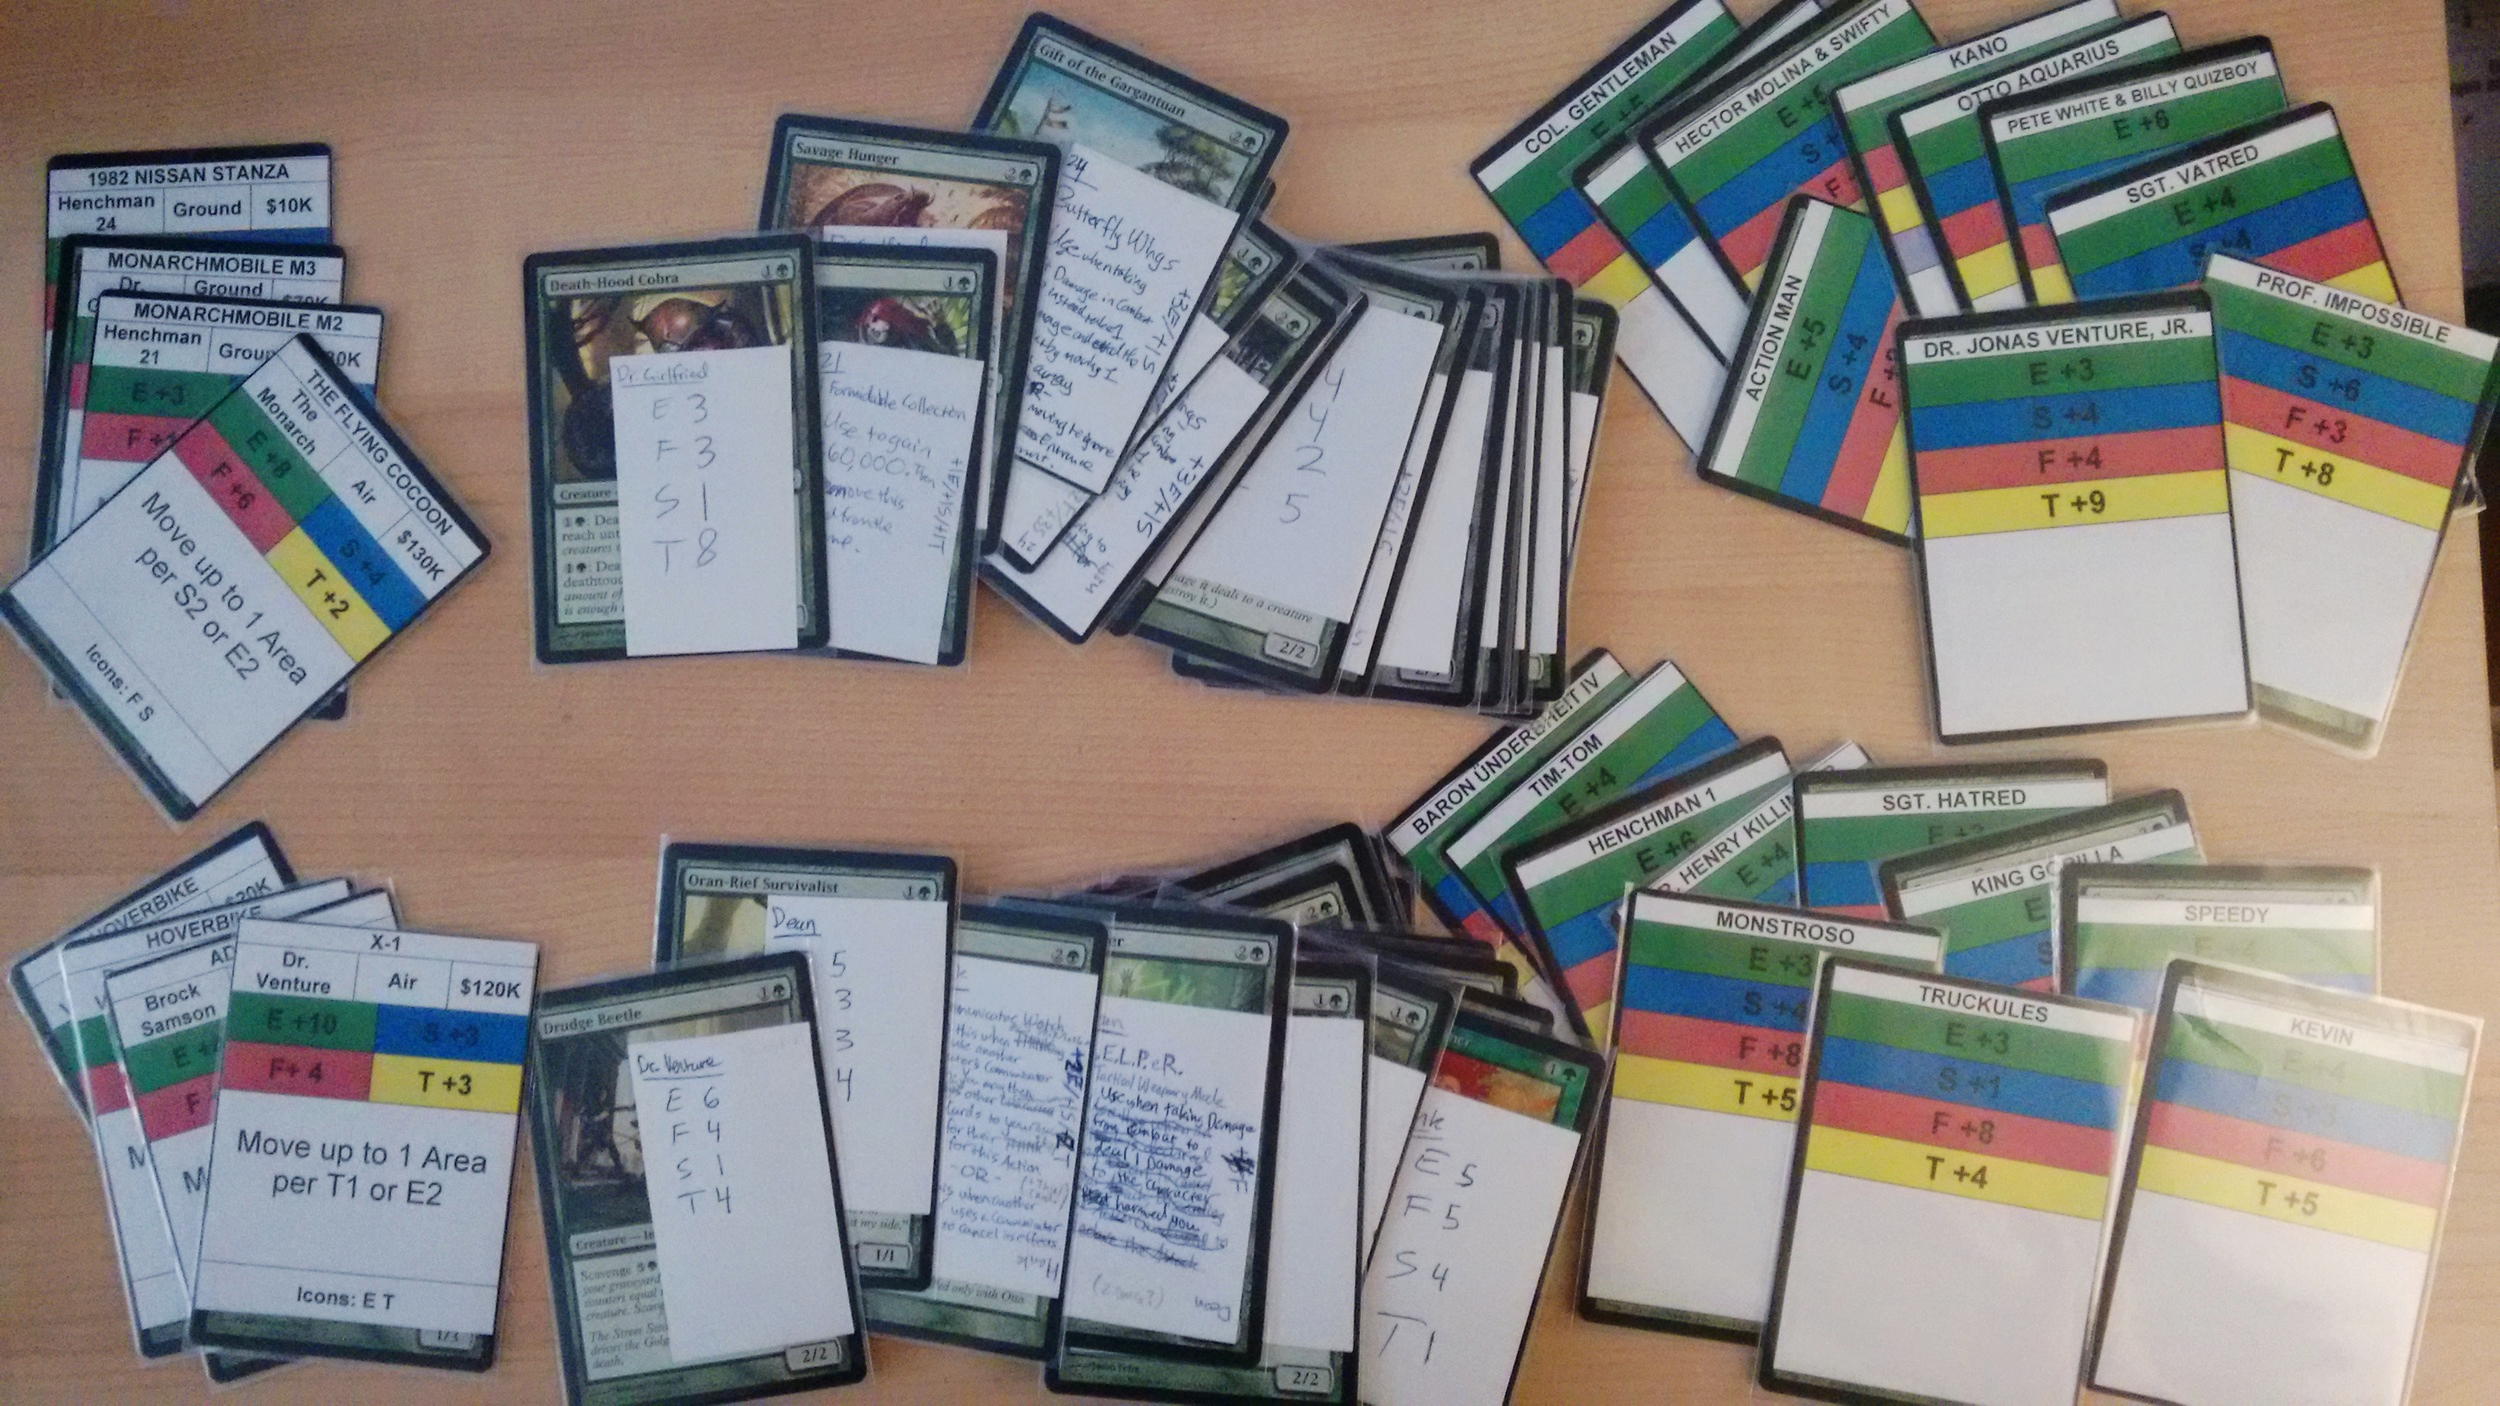 Old prototyping of Character Skill Cards, Item Cards, Vehicle Cards, and Ally Cards. (Yes, the piles of Ally cards are in the wrong rows, what of it?)